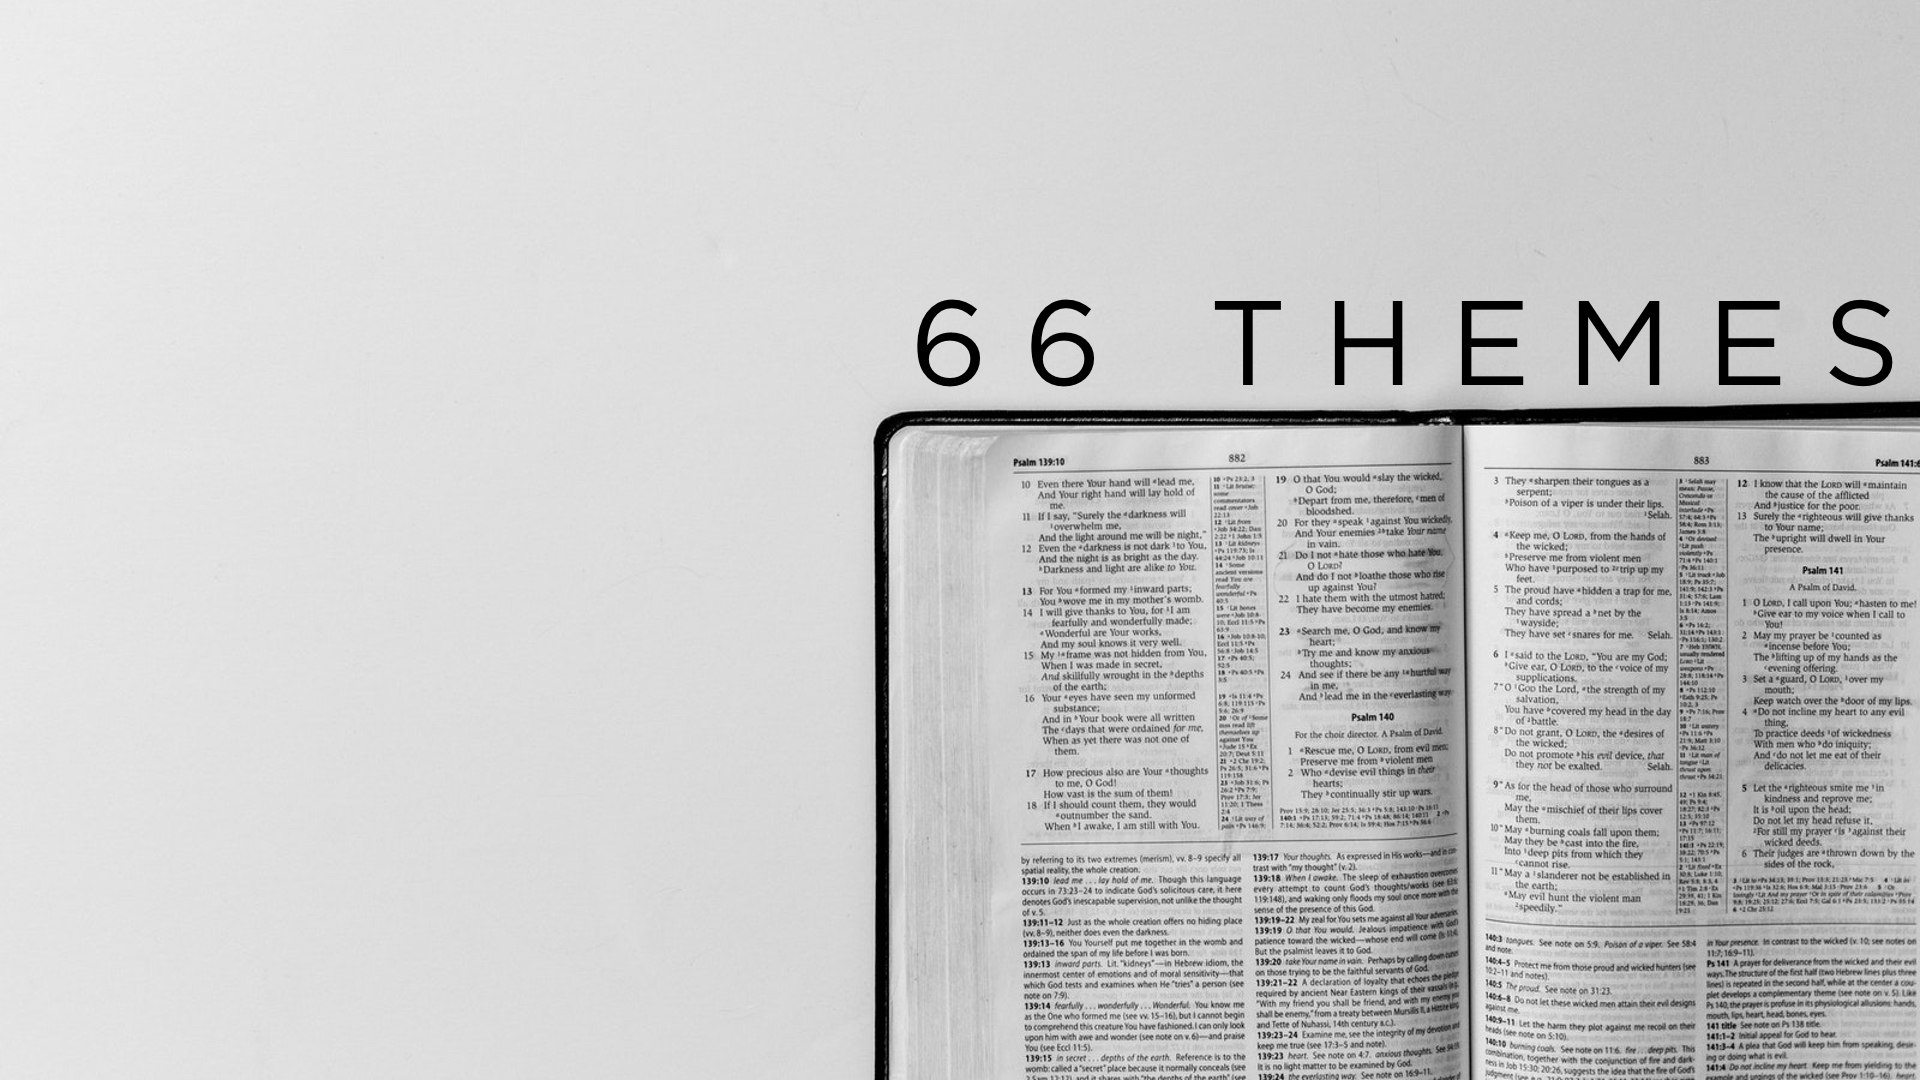 66 Themes [Memory Verse from Every Book in the Bible